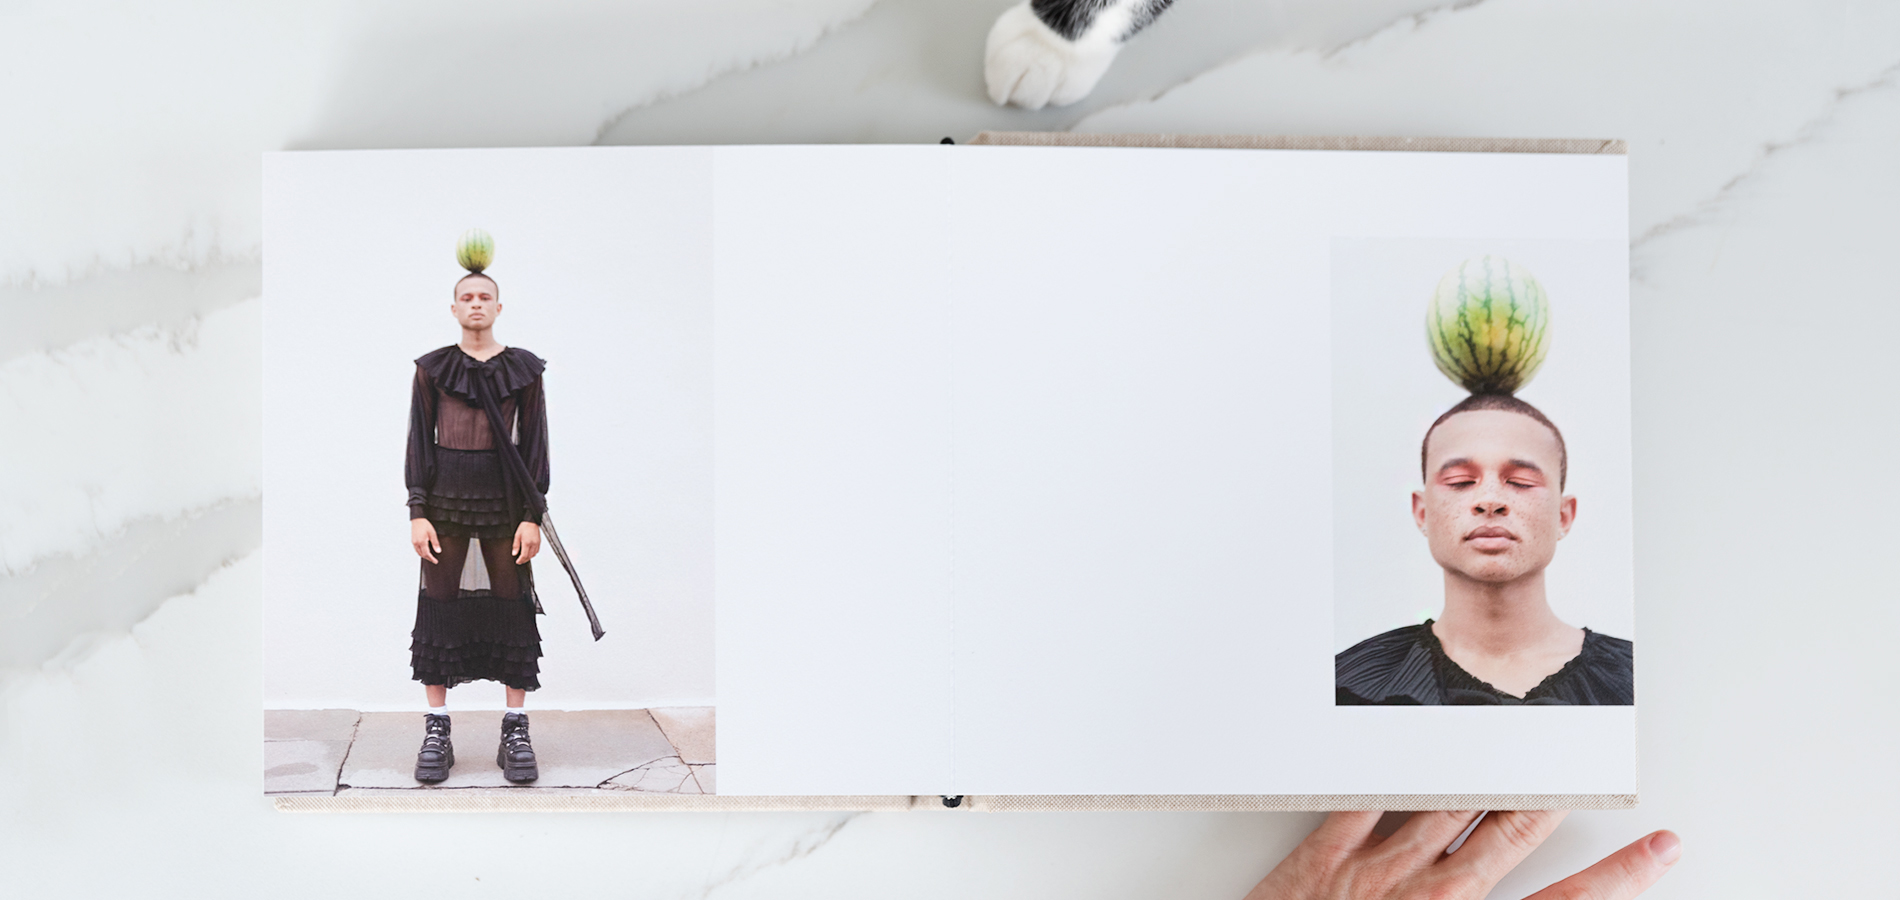 Artifact Uprising Layflat Photo Album opened to two page spread with high-fashion portrait of man balancing watermelon on his head on either page